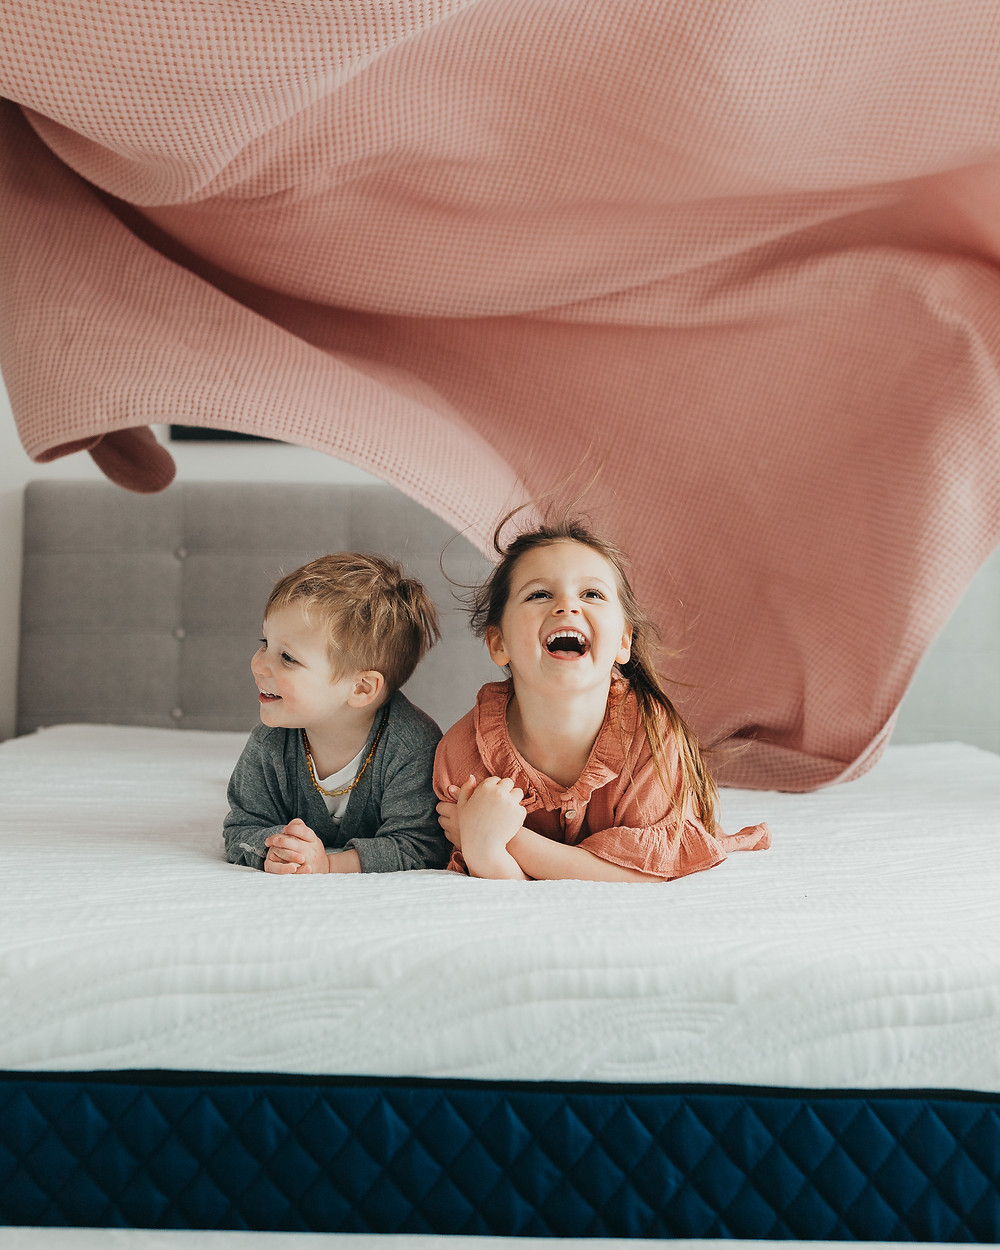 A little girl and boy laughing on the bed as a blanket is lifted above their heads while they lay on a silk and snow mattress.